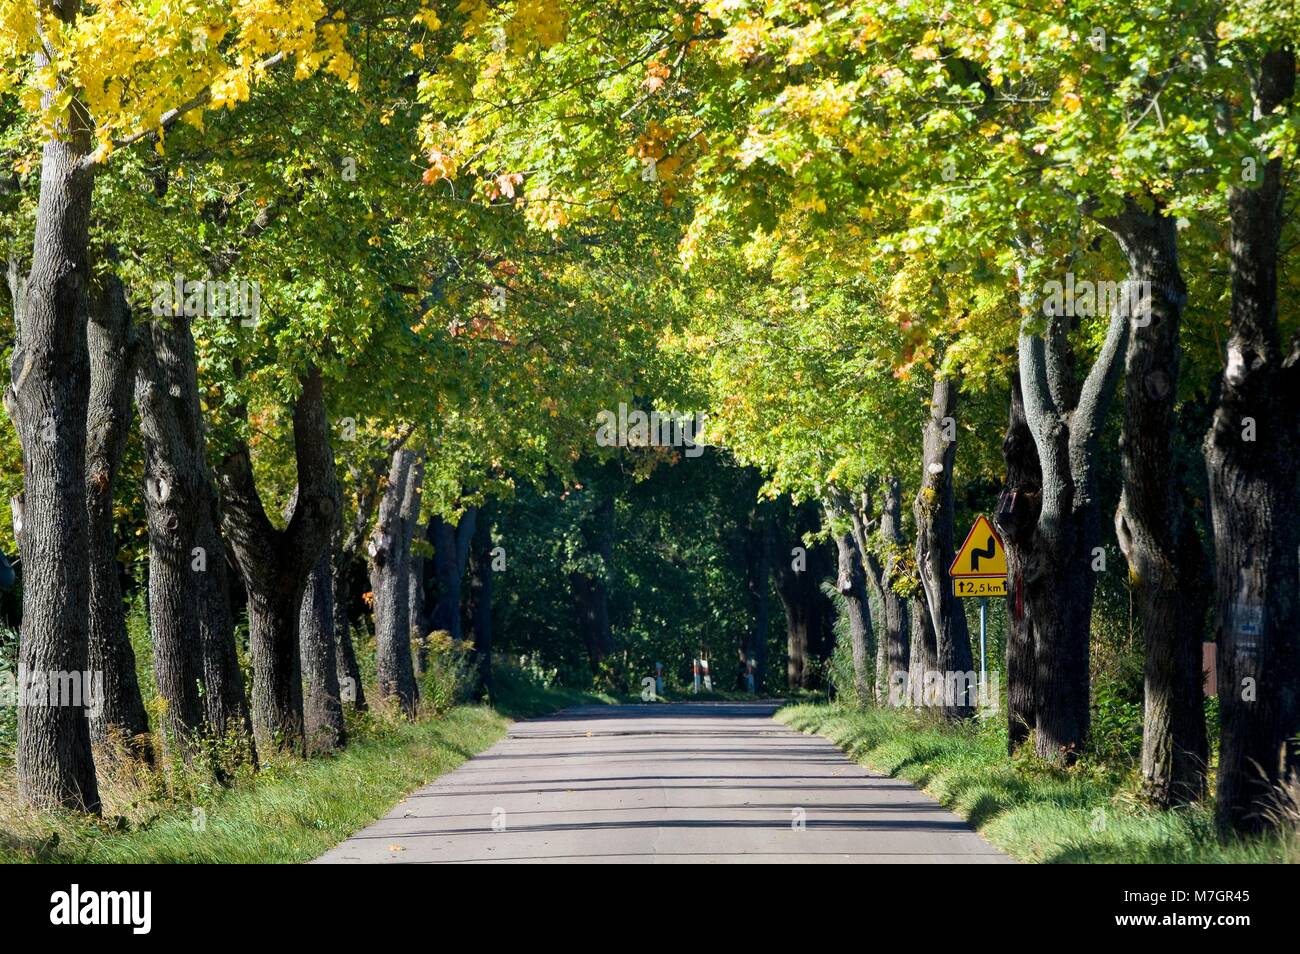 Tunnel Of Foliage Stock Photos & Tunnel Of Foliage Stock Images - Alamy